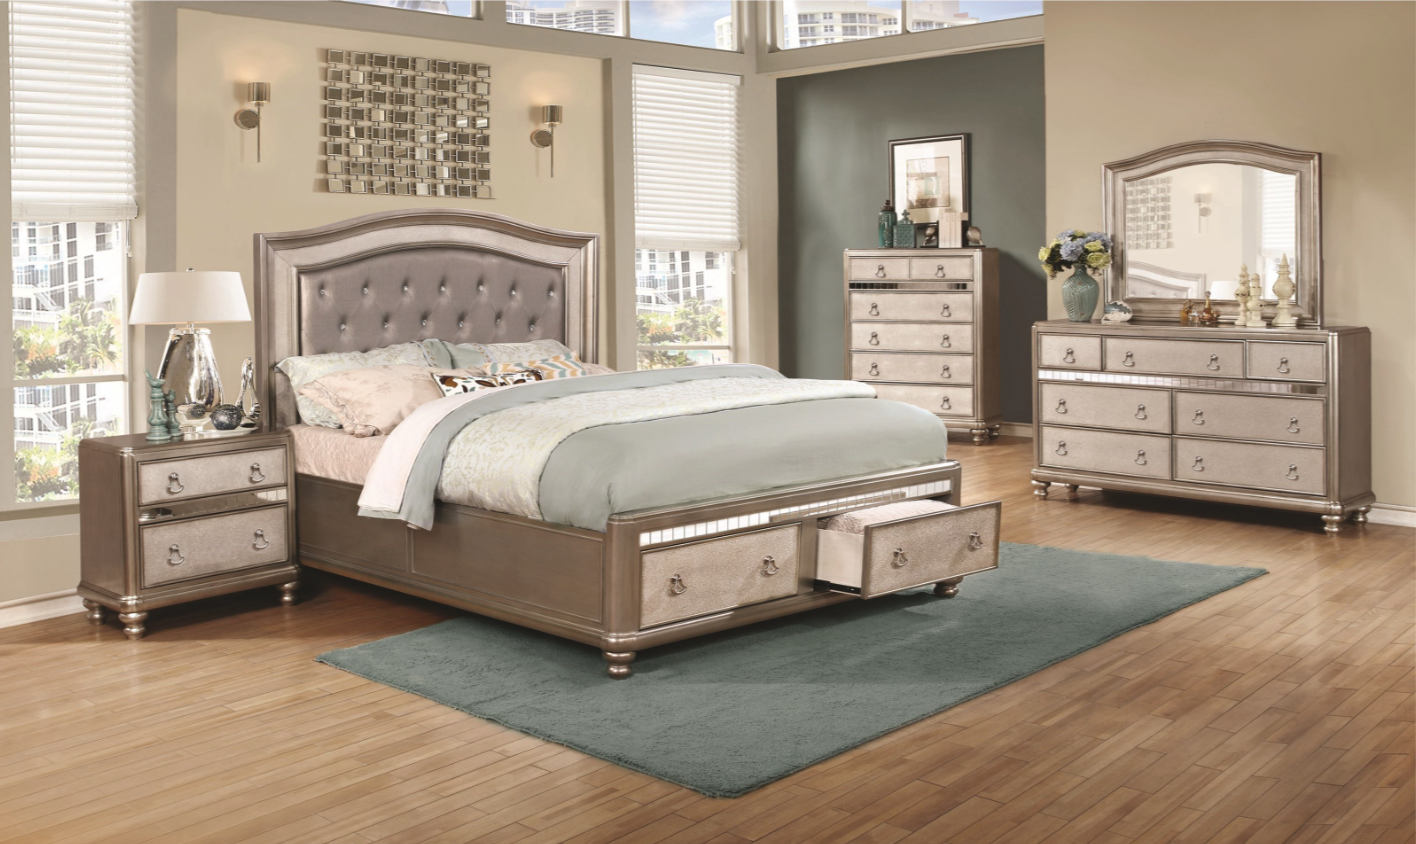 Bling Game 4pc Storage Bedroom Set Furniture Mattress